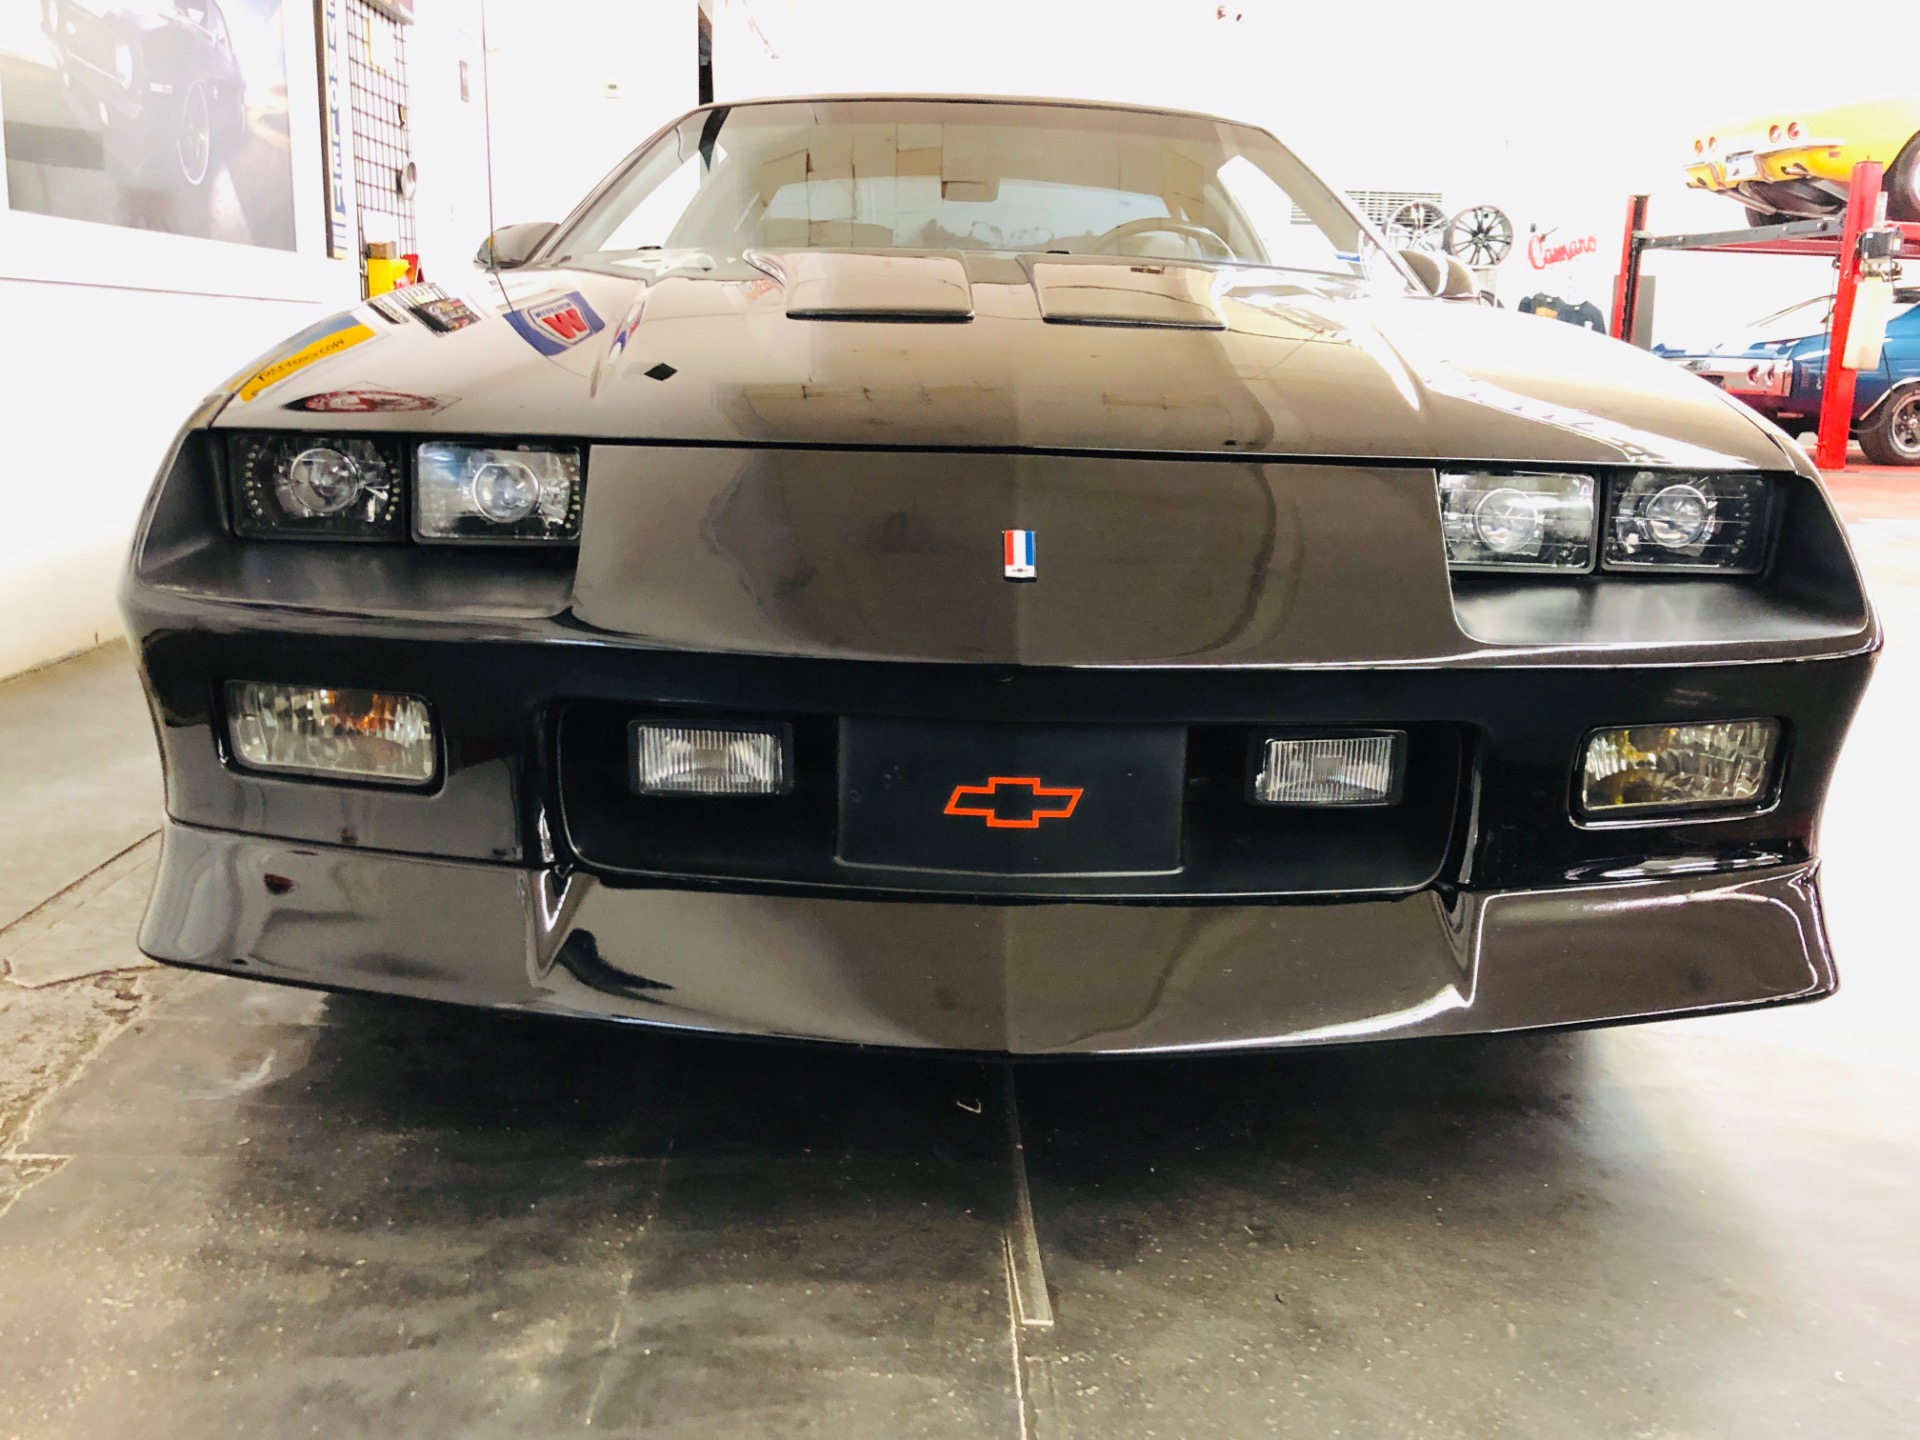 Used 1992 Chevrolet Camaro - Z/28 - 25TH ANNIVERSARY - SHOW QUALITY PAINT - LOW MILES - SEE VIDEO | Mundelein, IL